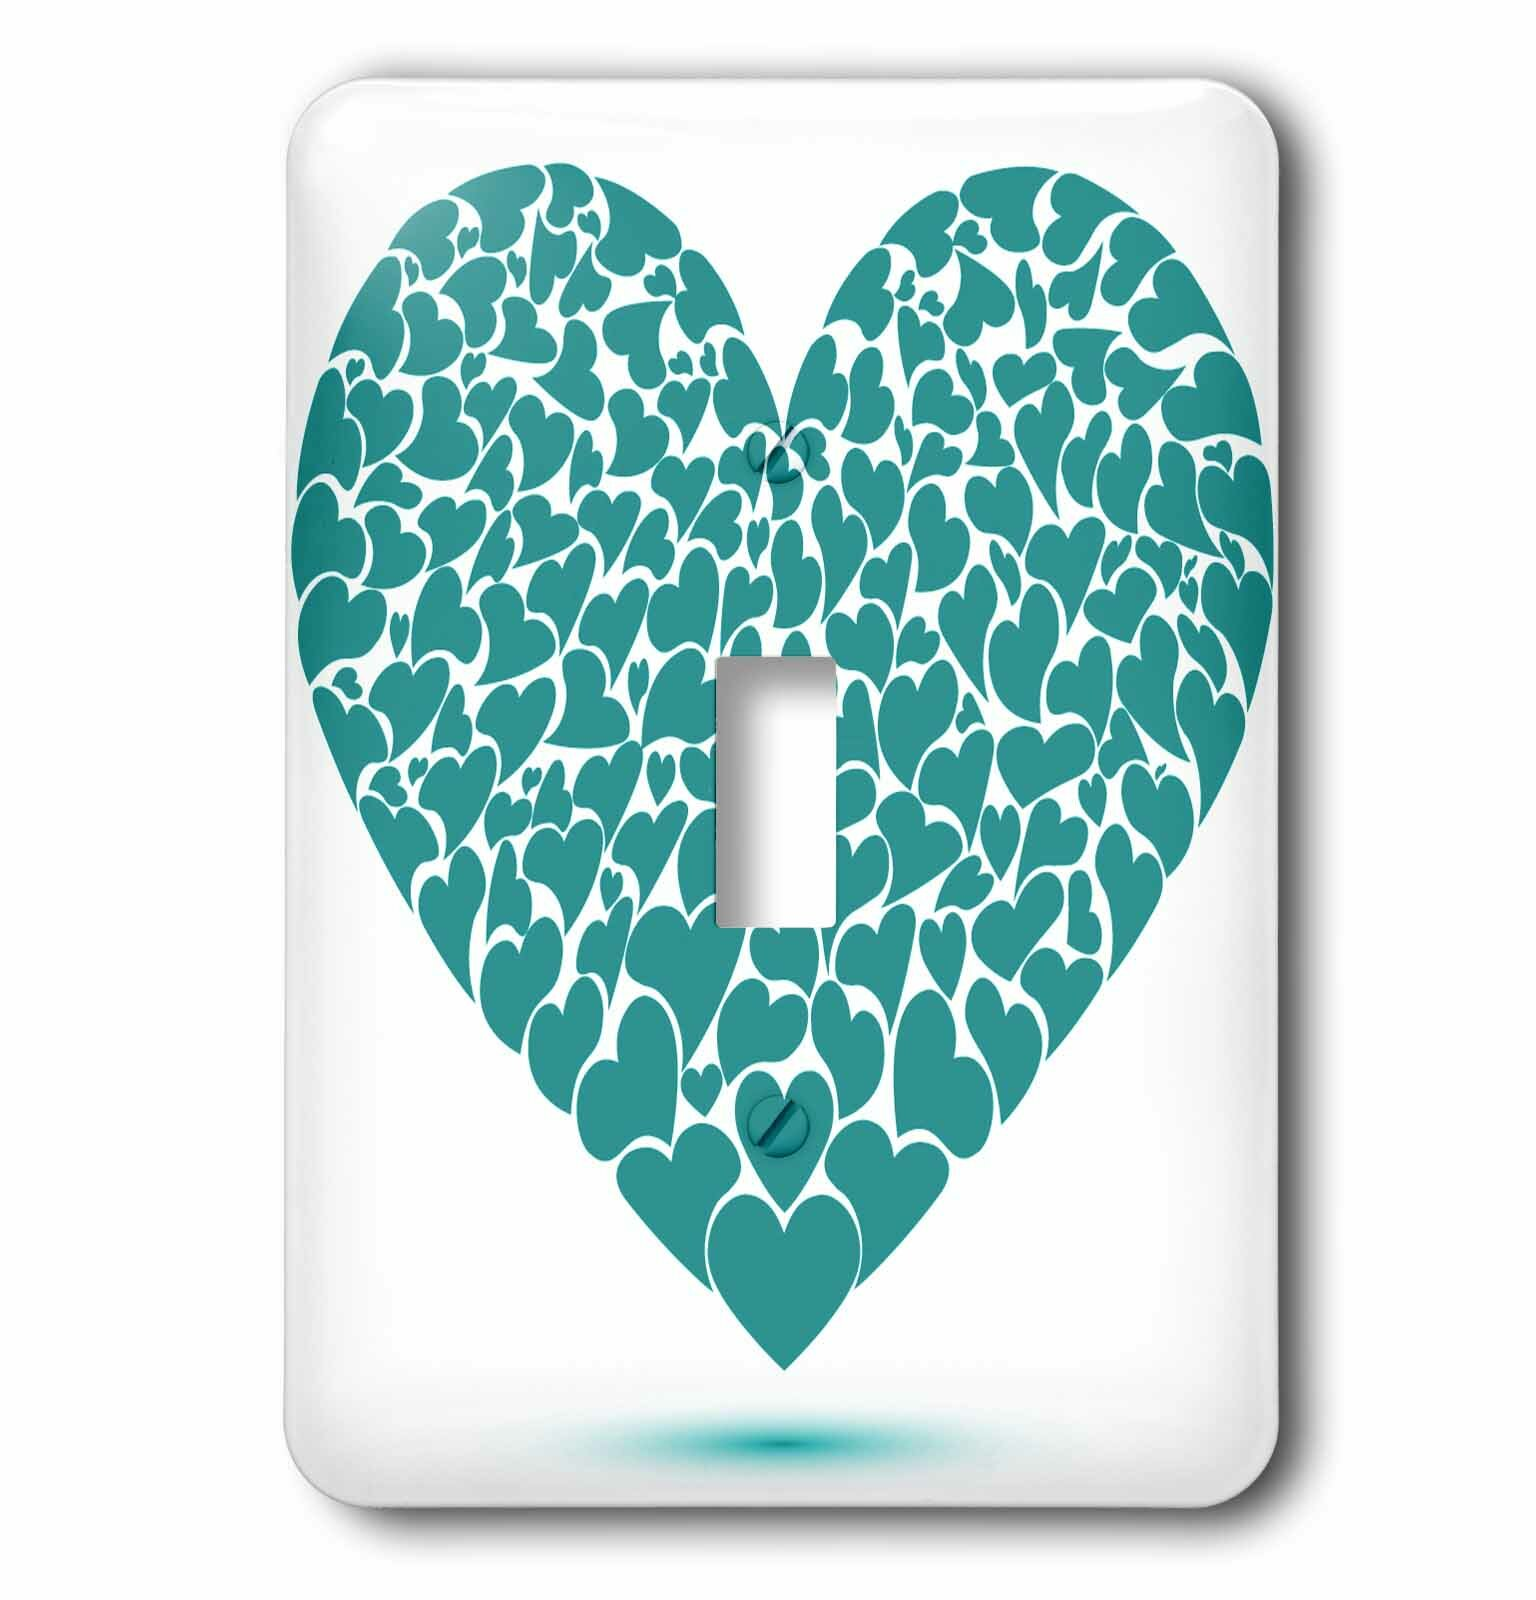 3drose Heart Made Of Smaller Hearts 1 Gang Toggle Light Switch Wall Plate Wayfair